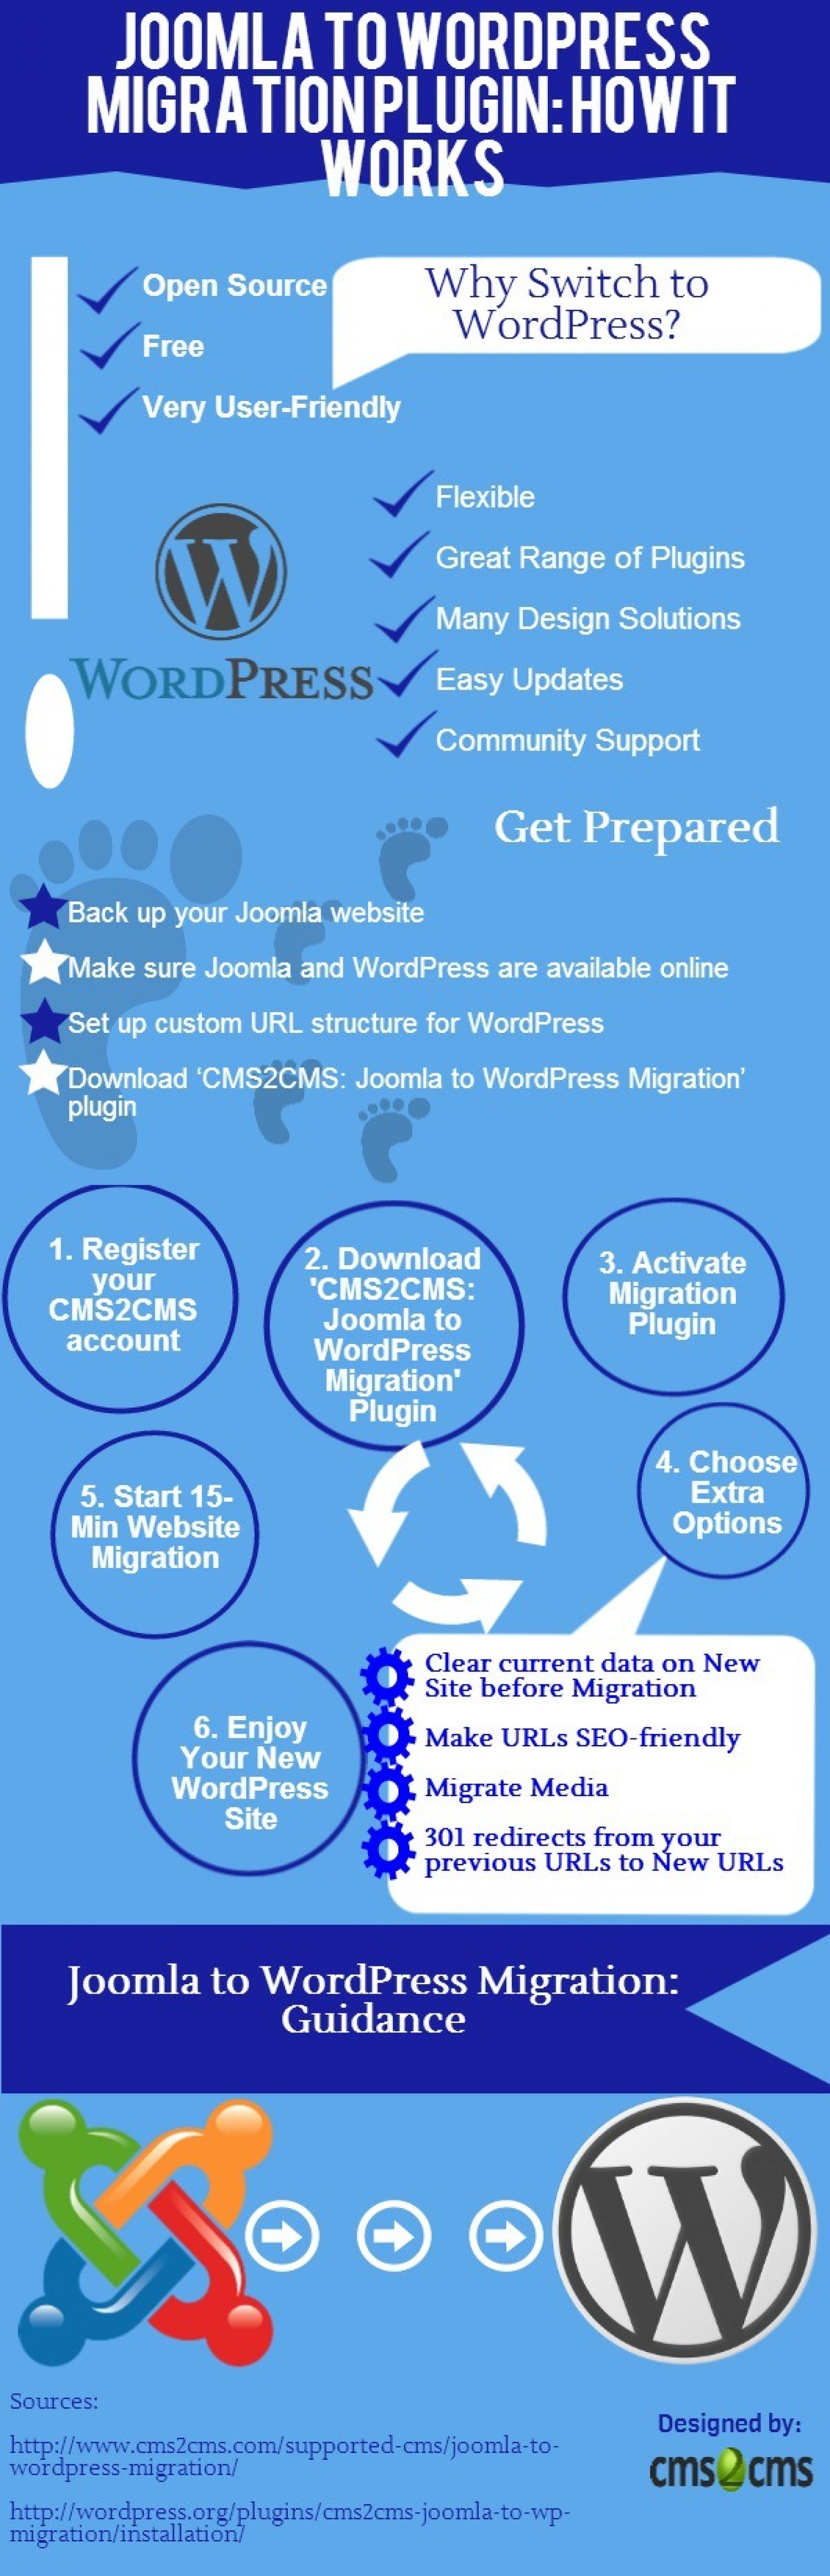 Joomla to WordPress Migration Plugin: How It Works Infographic